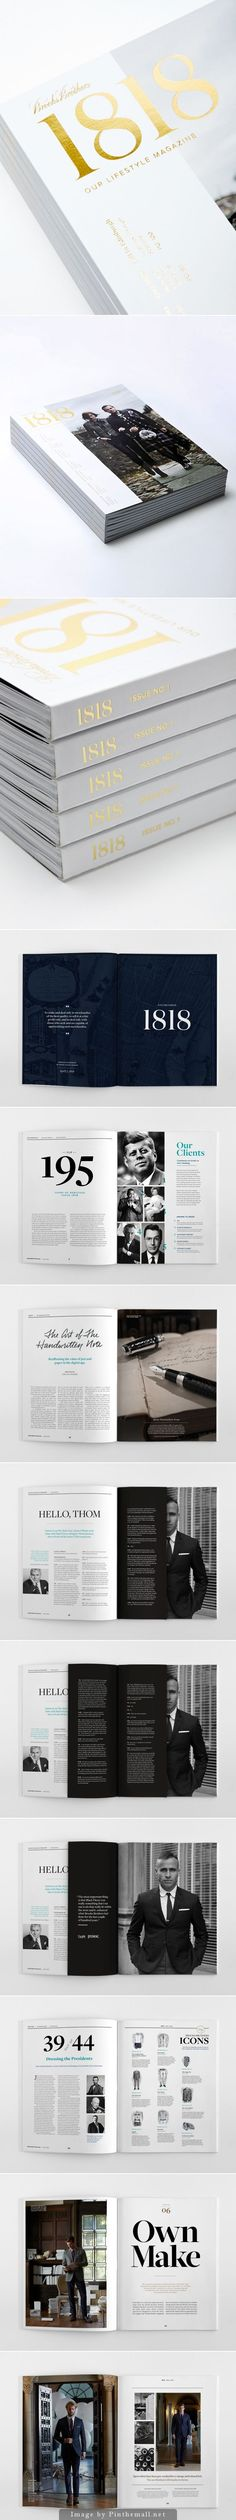 1818, BROOKS BROTHERS LIFESTYLE MAGAZINE. DESIGN BY Stephanie Toole - created via http://pinthemall.net: